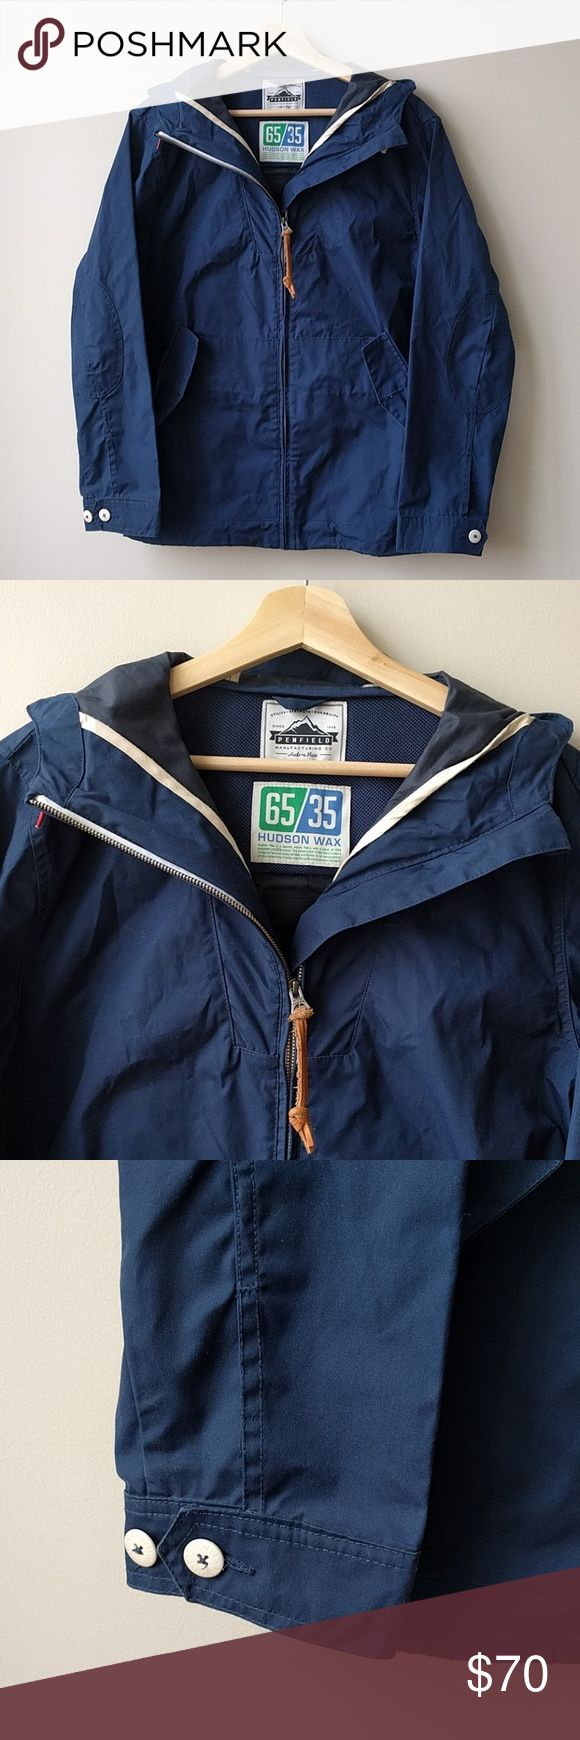 Penfield Mens Wax Jacket Navy Blue Hood Penfield Mens Wax Jacket Navy Blue Hood  Please note that there are no buttons on front pockets.  All measurements are done with the garment laying flat on a table and measured straight across.  Size: Medium Color: Navy Armpit to armpit: 22 inches Sleeve (mid back to end of sleeve): 33.5 inches Length (shoulder to bottom hem): 30 inches  Feel free to ask questions! I want to make sure you're getting what you want :)  Like what you see? Check out my…